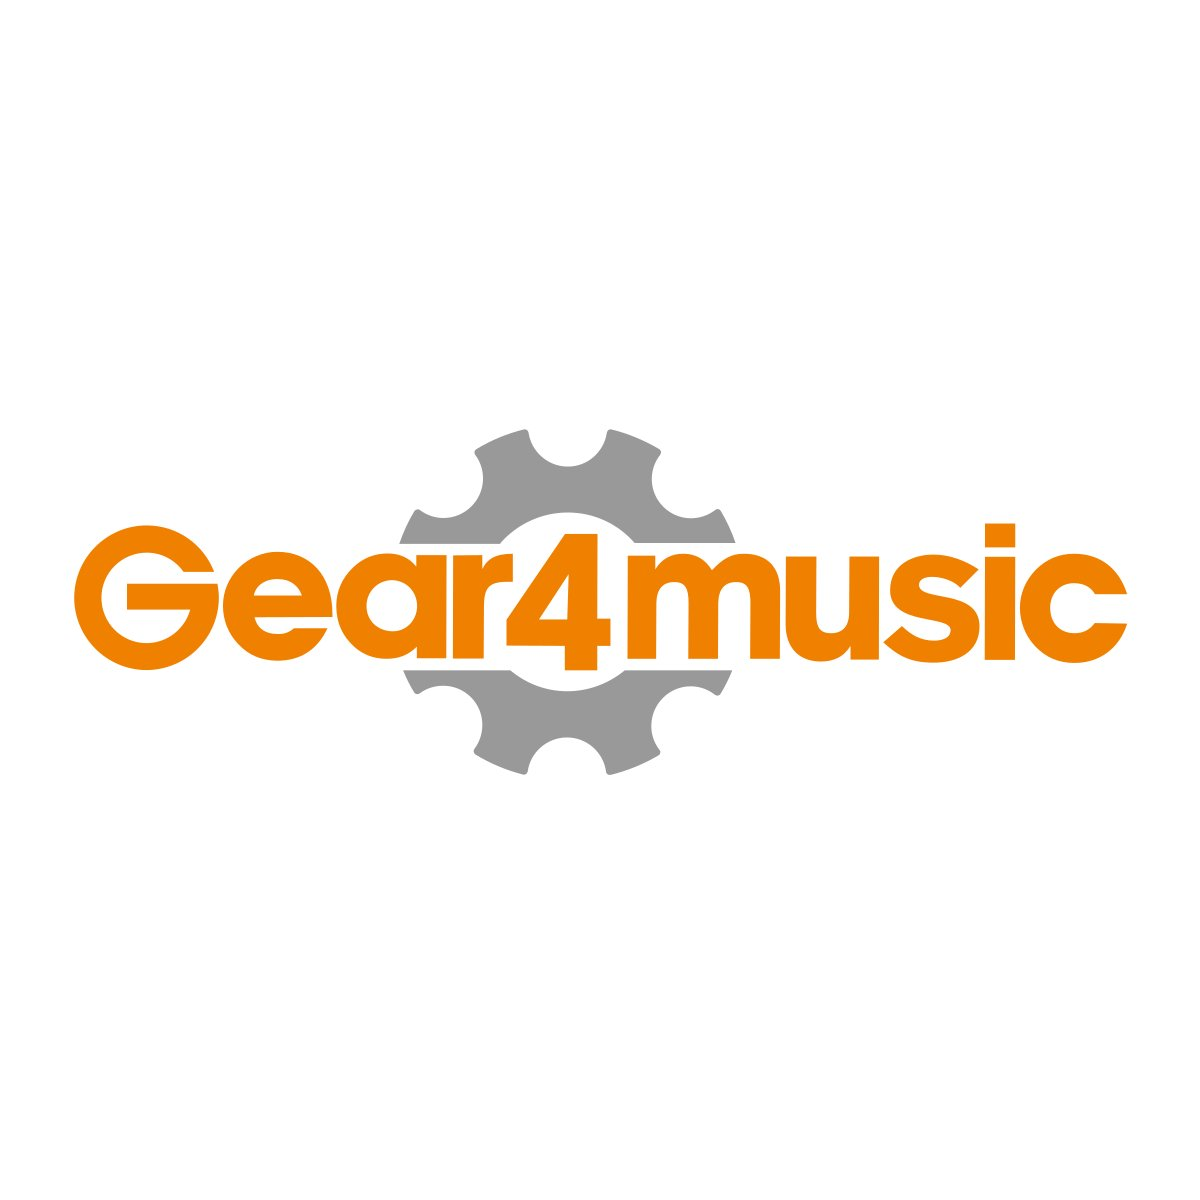 SDP-2 Gear4music - Piano de Palco